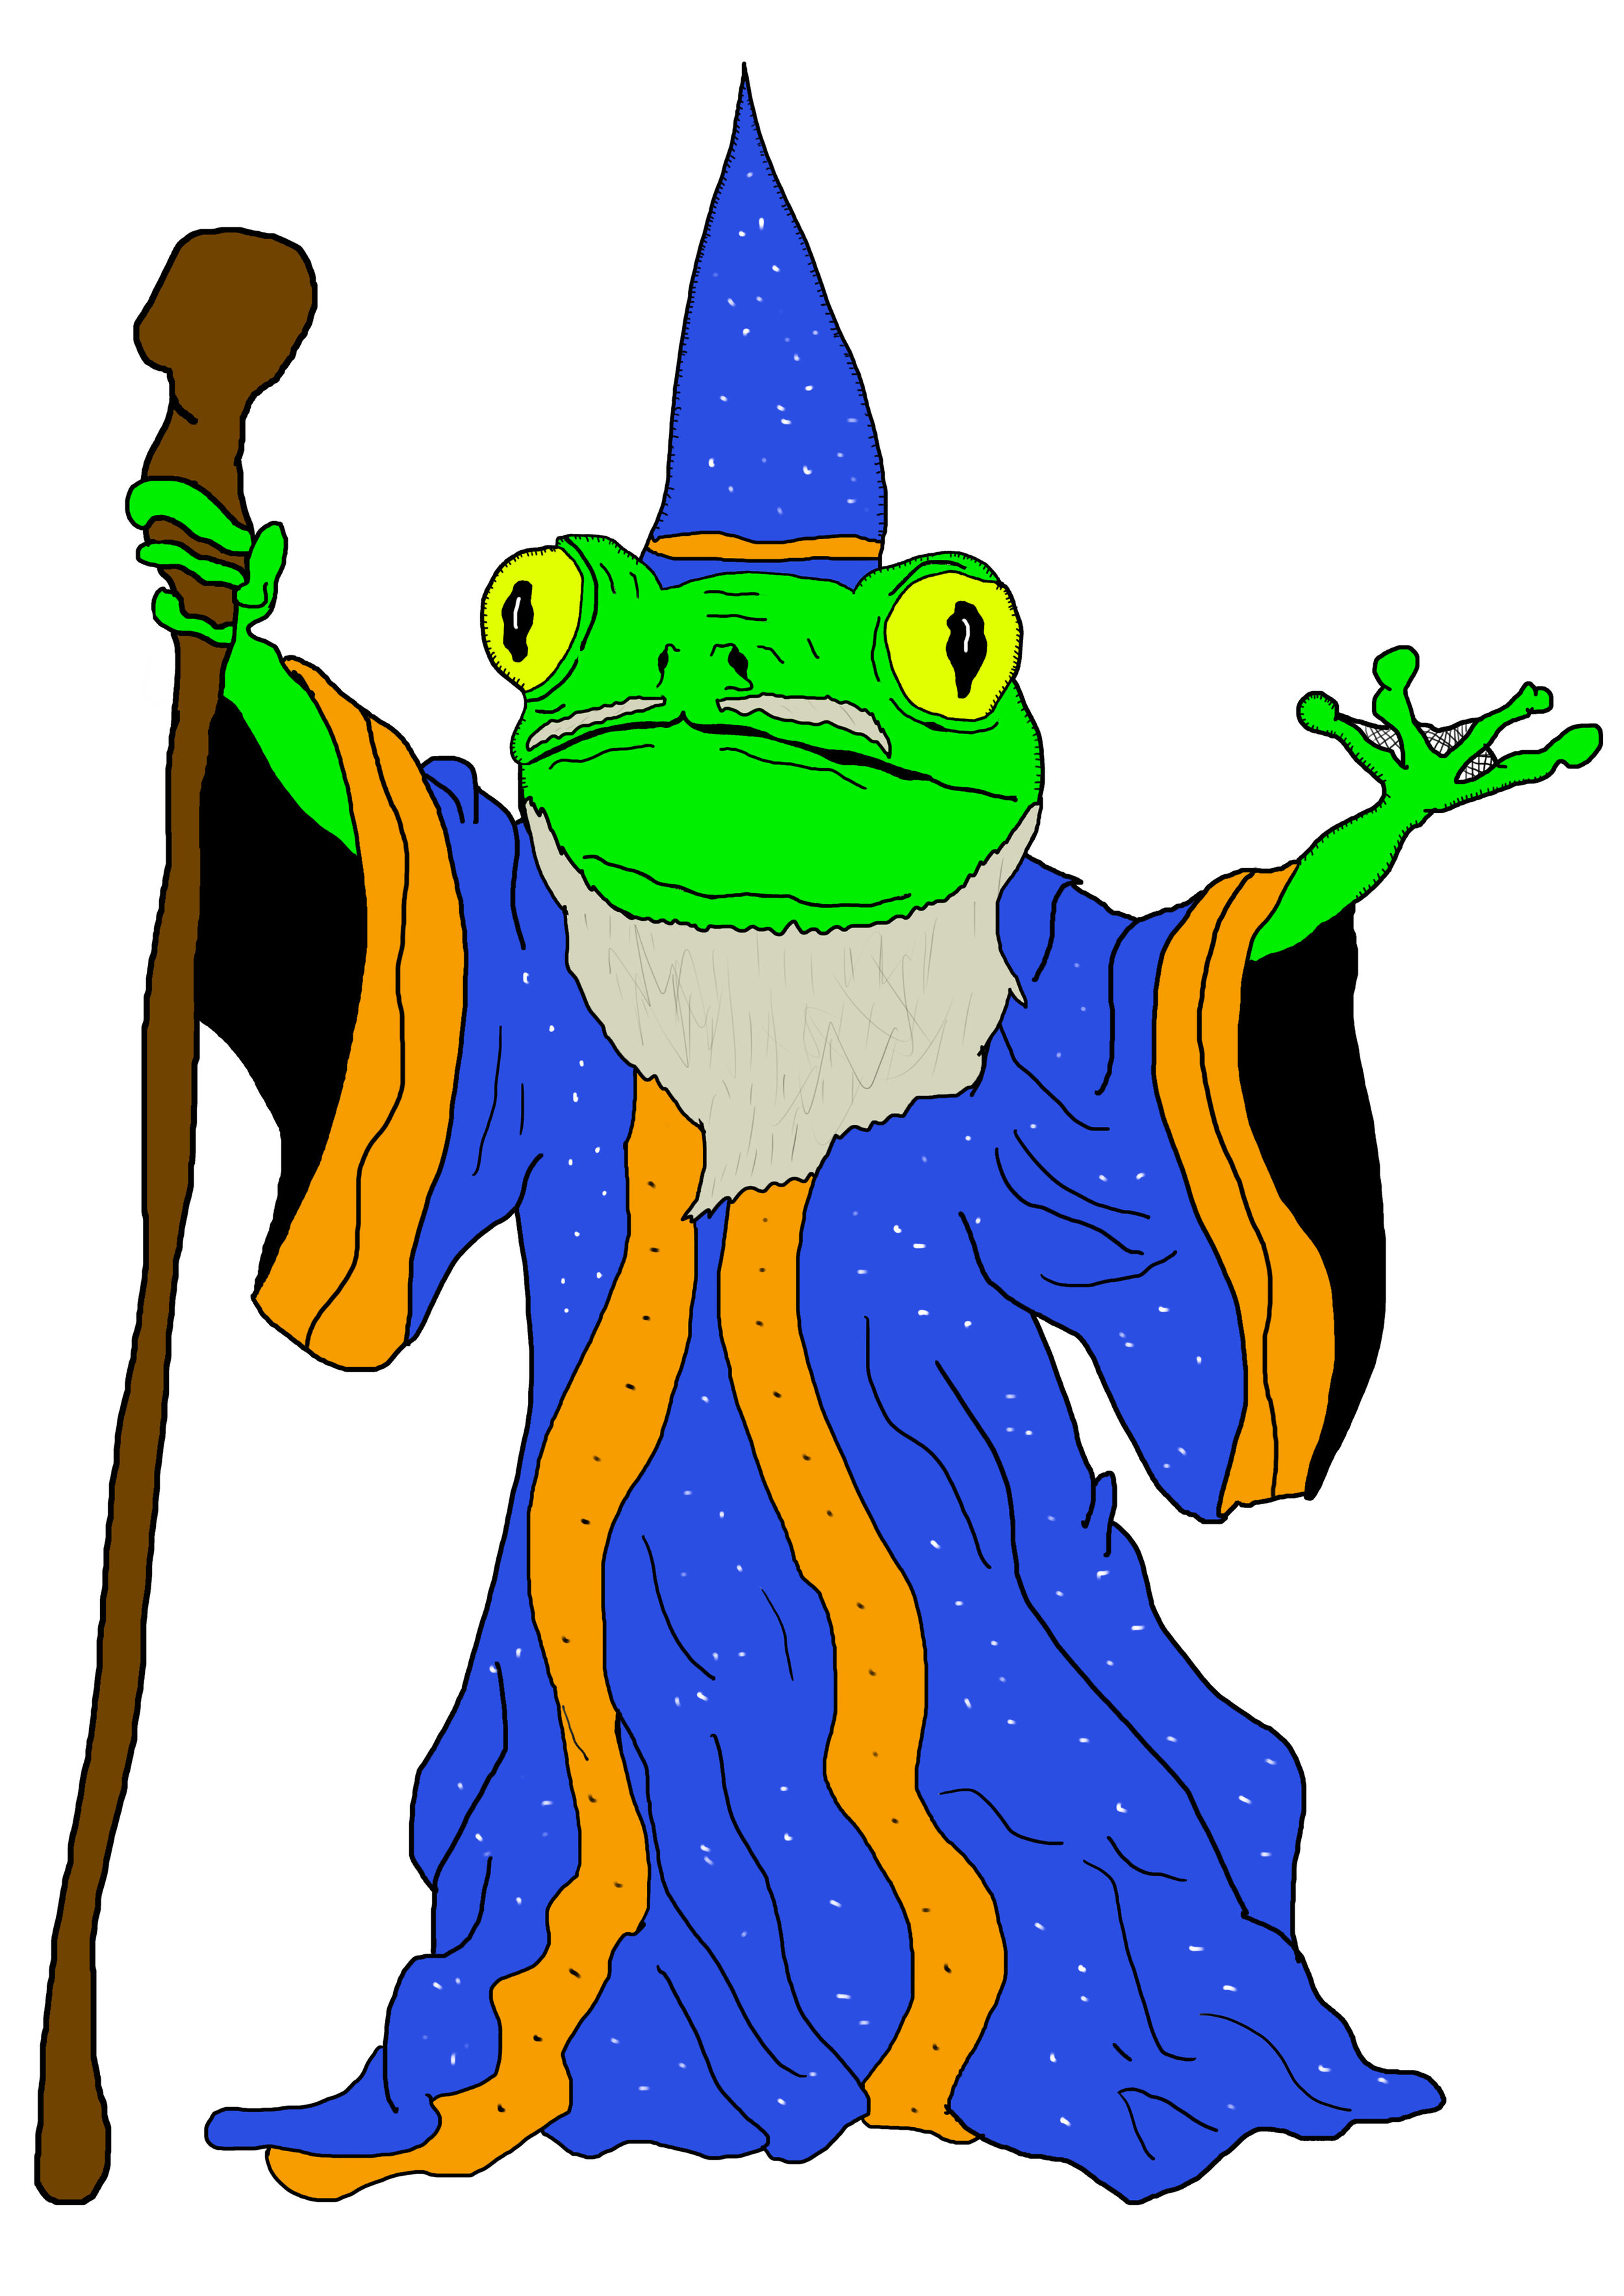 The Wizard of the Pond